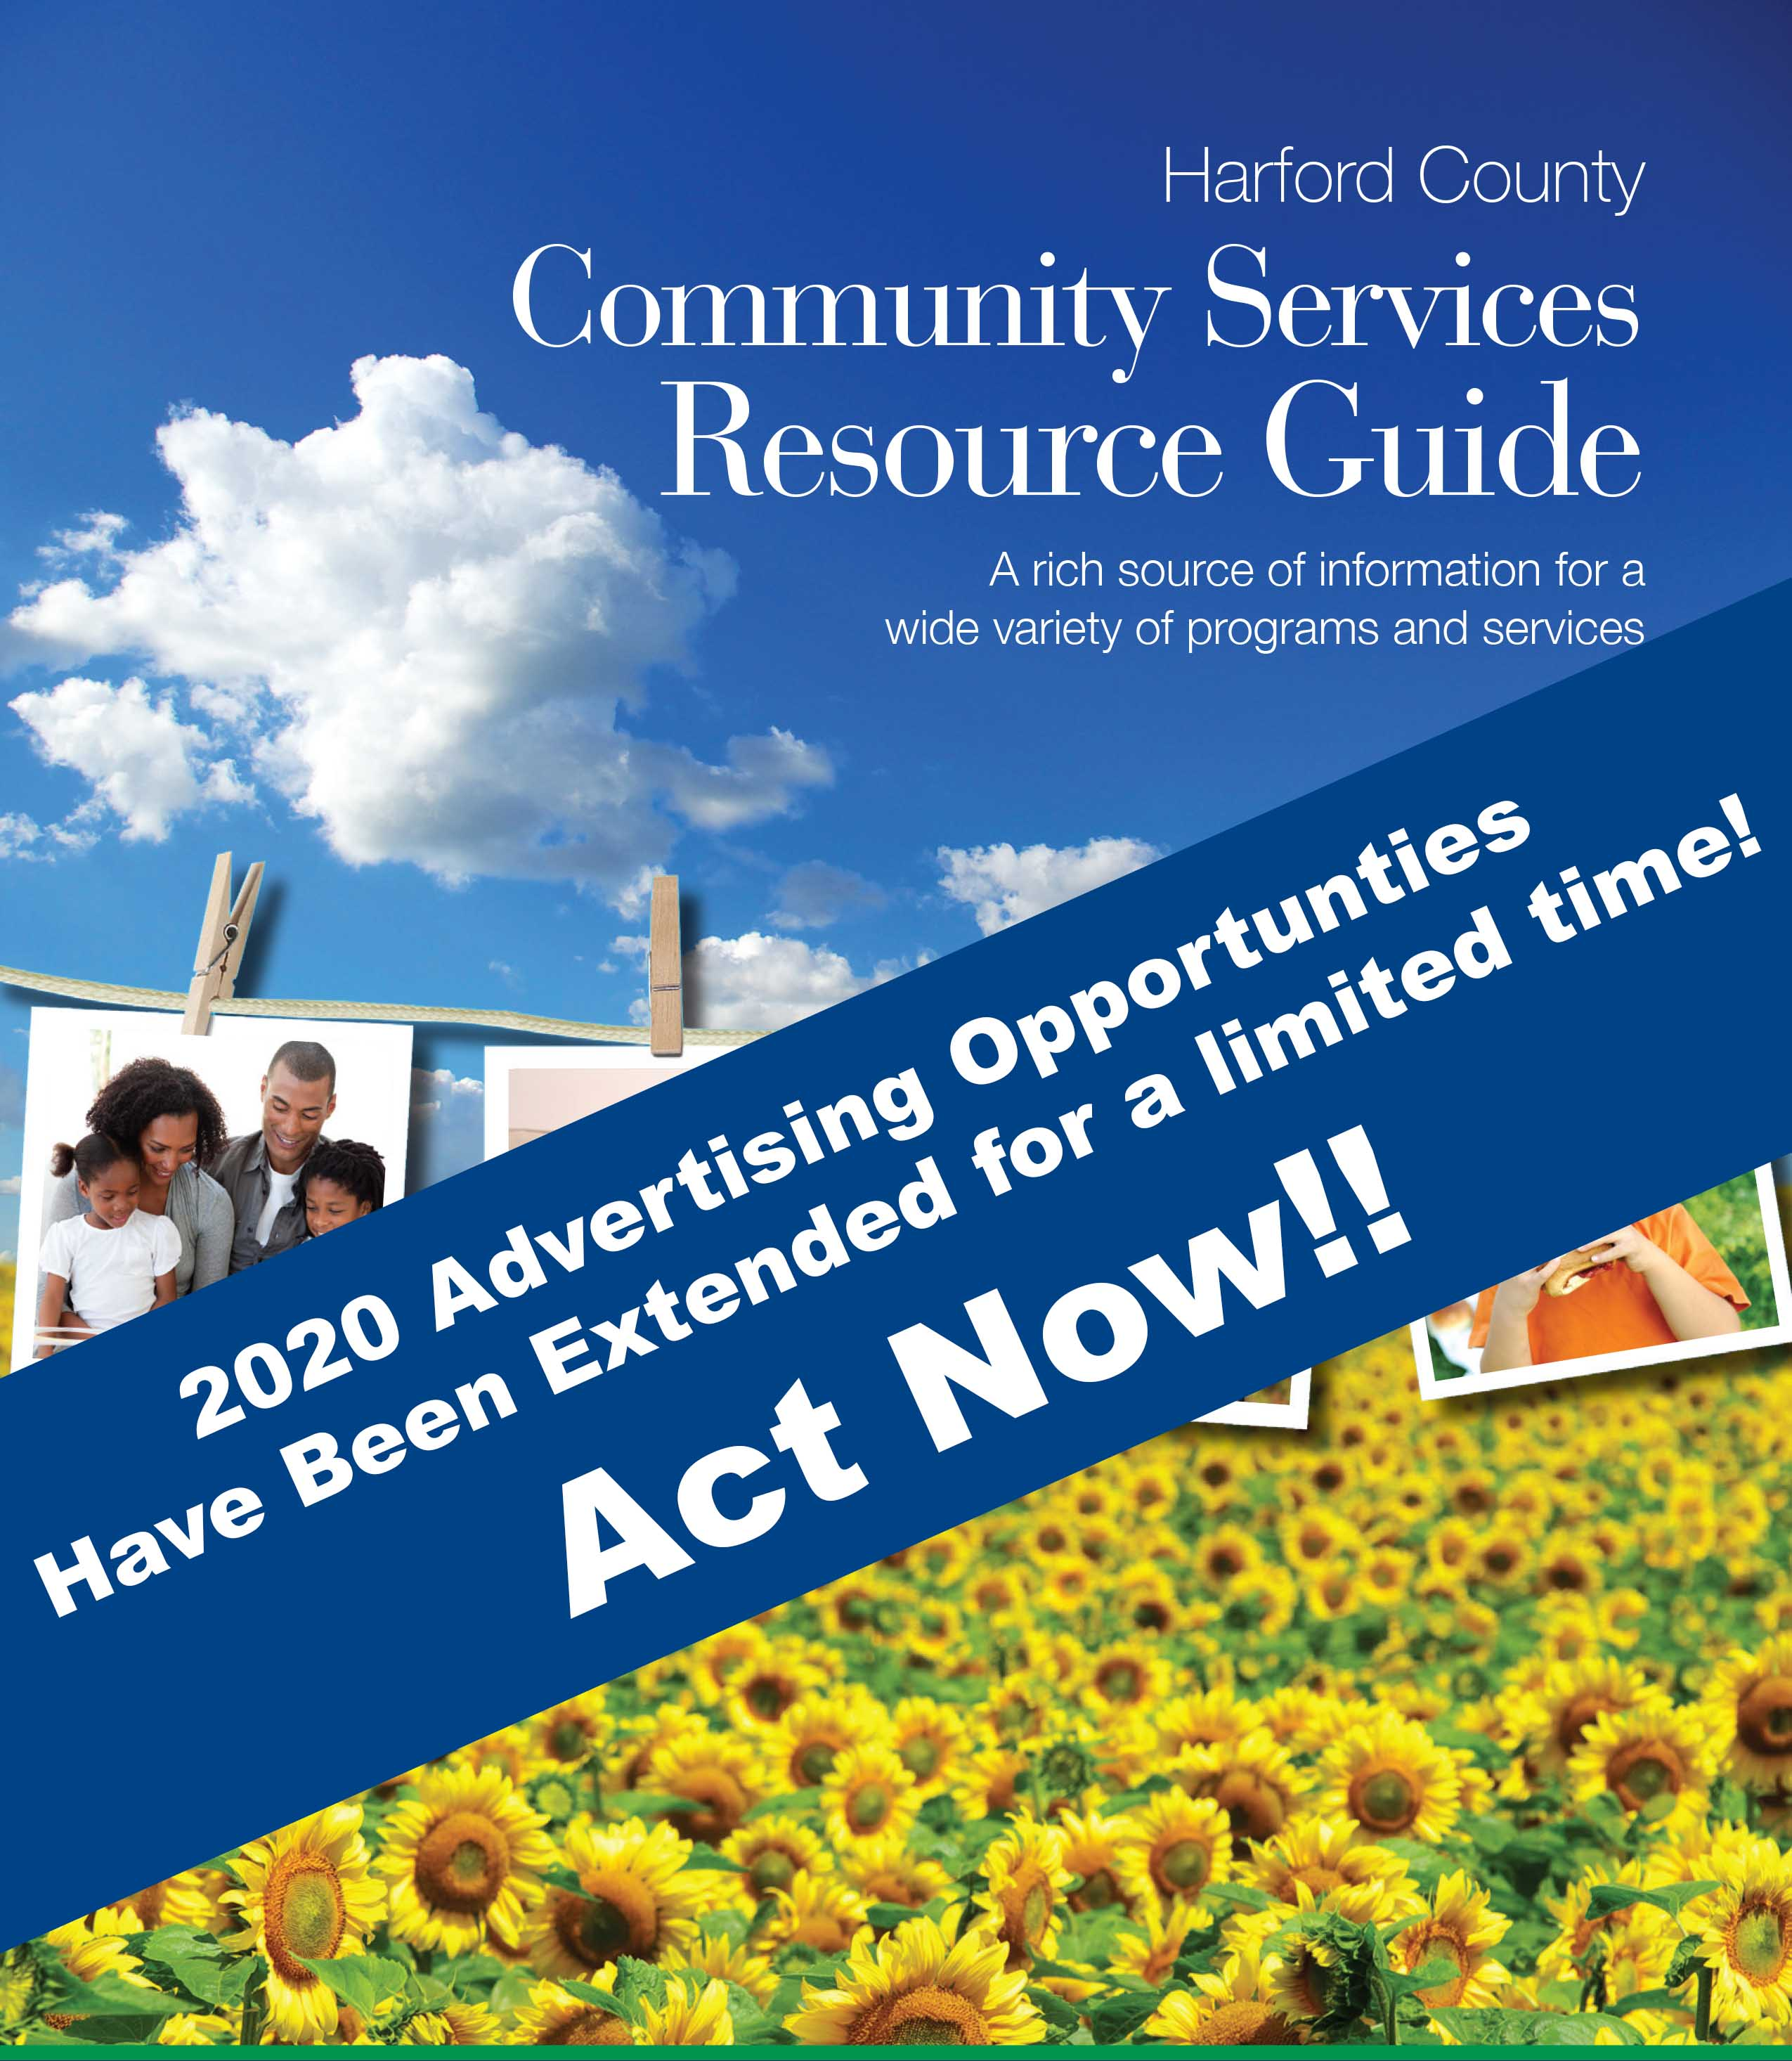 Resource Guide - advertising opportunities 2020 Button